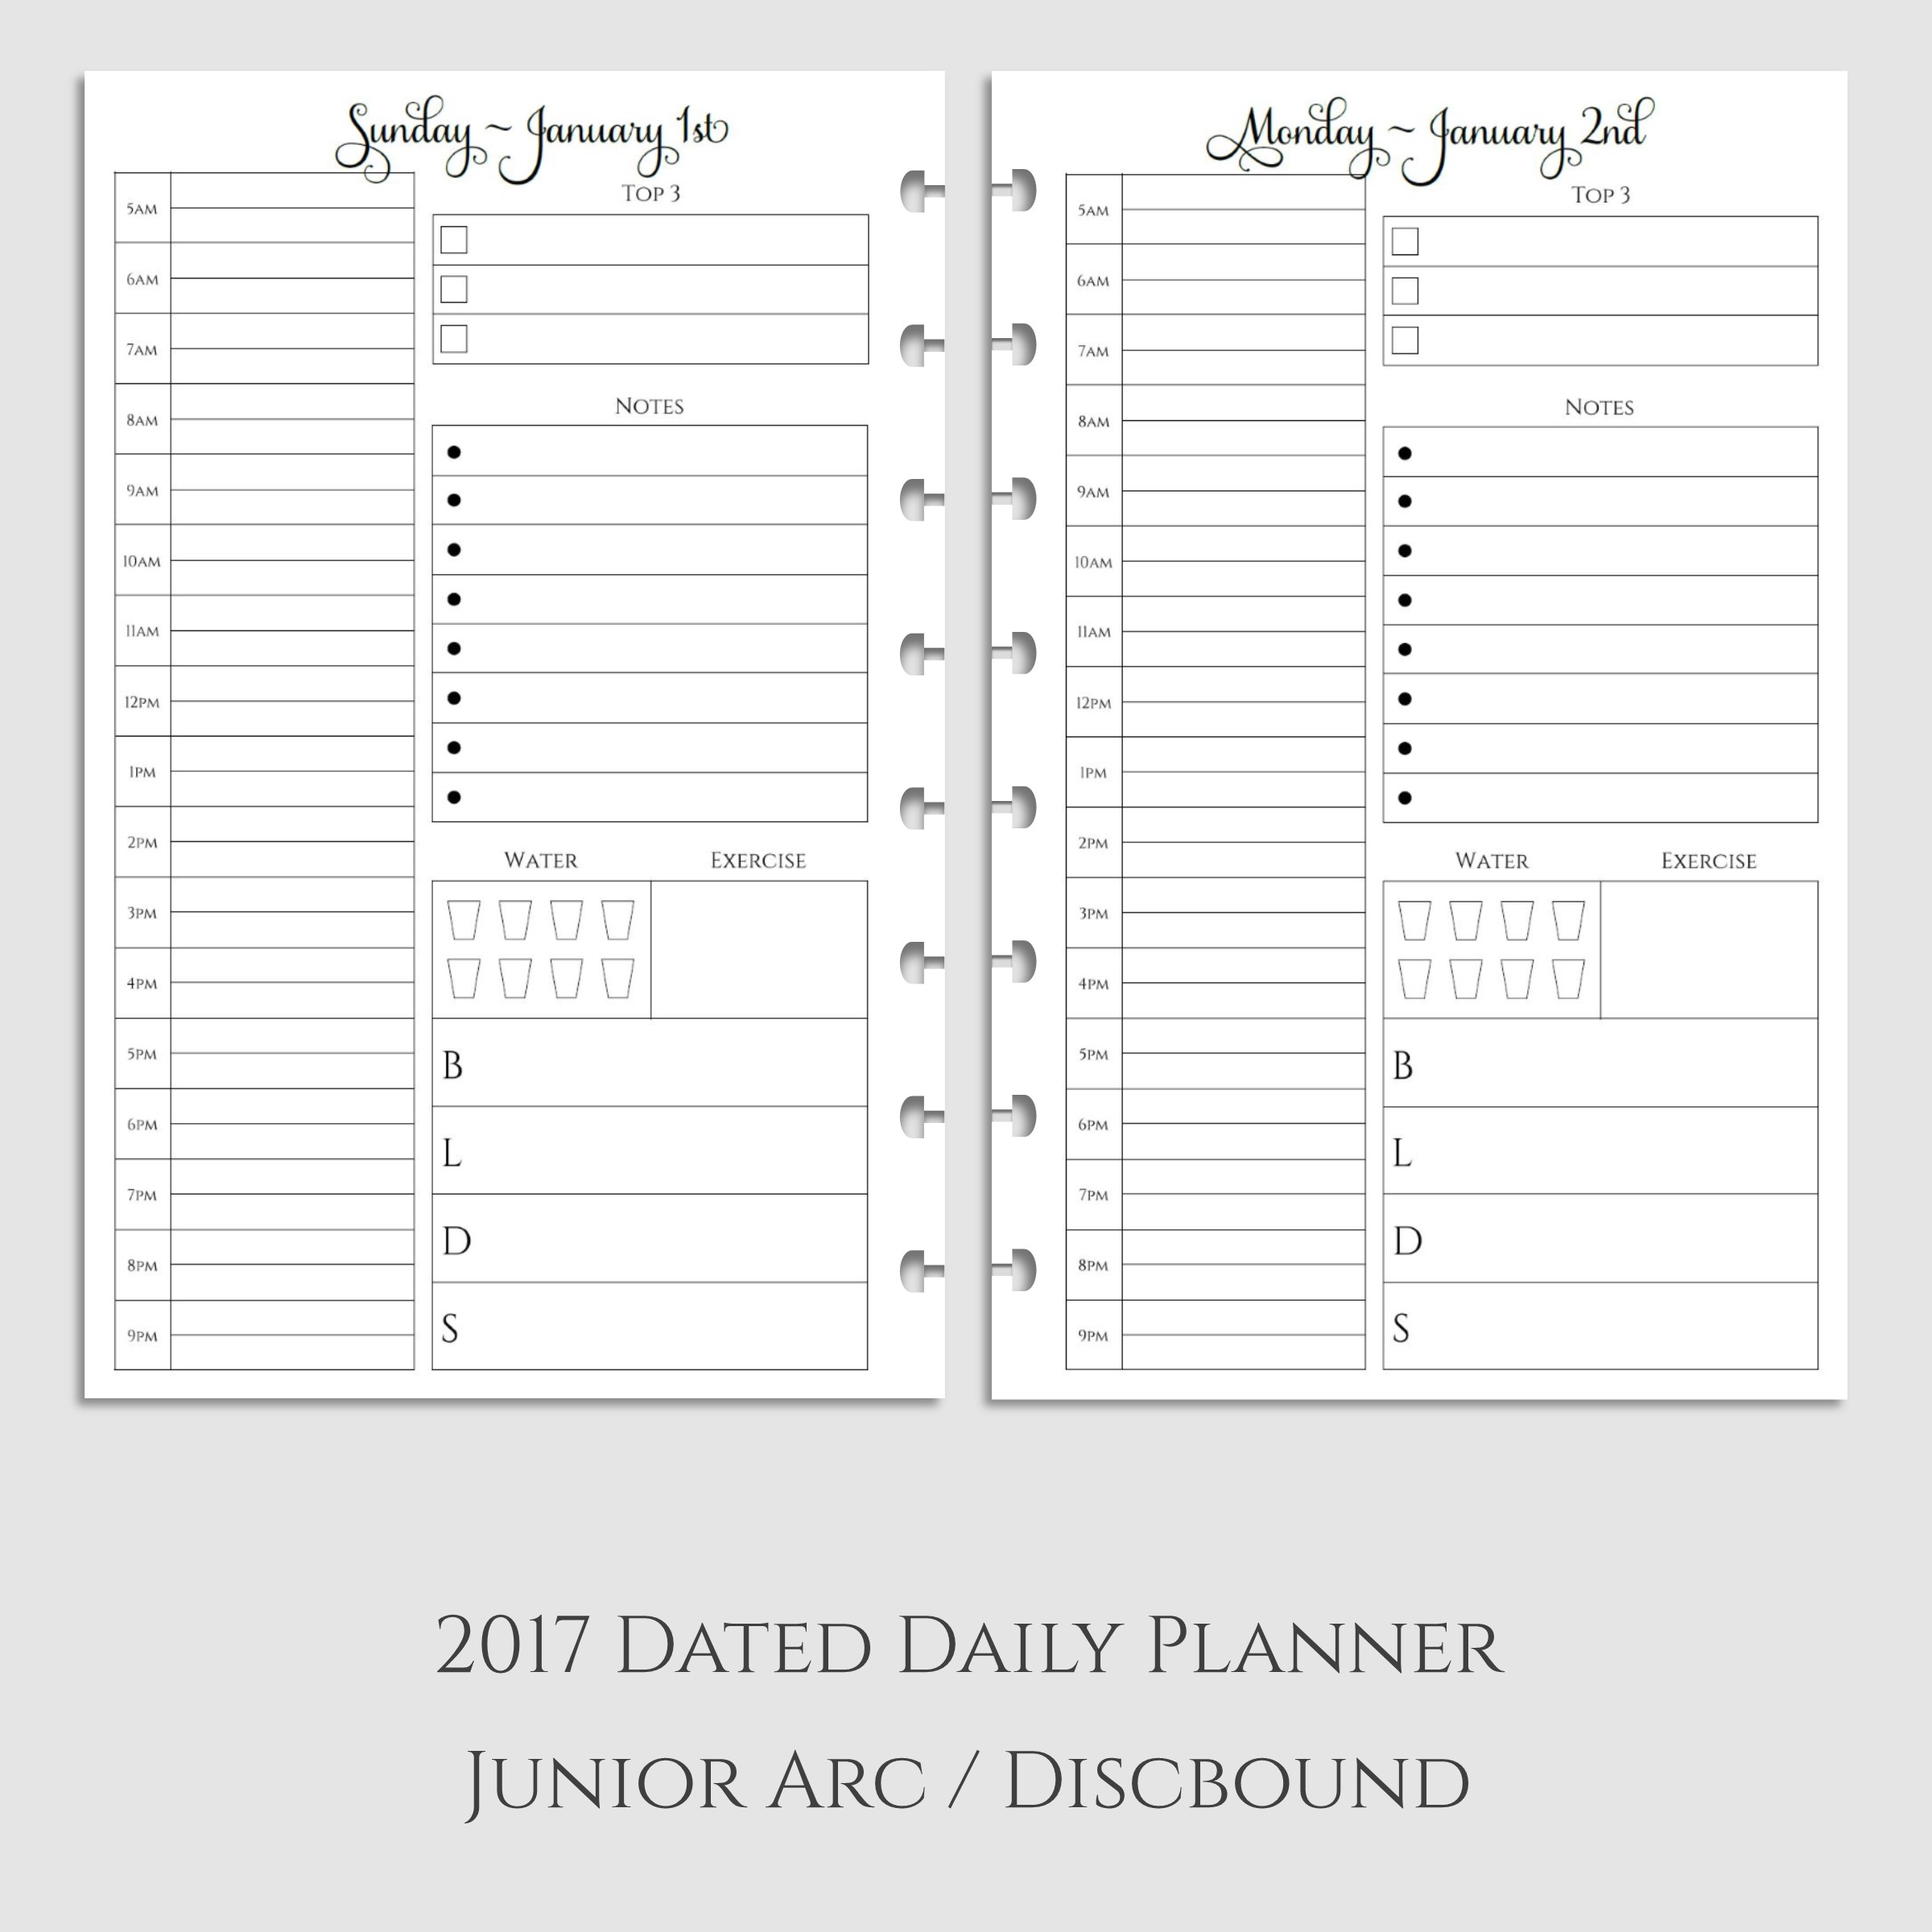 2017 Daily Planner Inserts with Health & Meal Tracking ~ Discbound